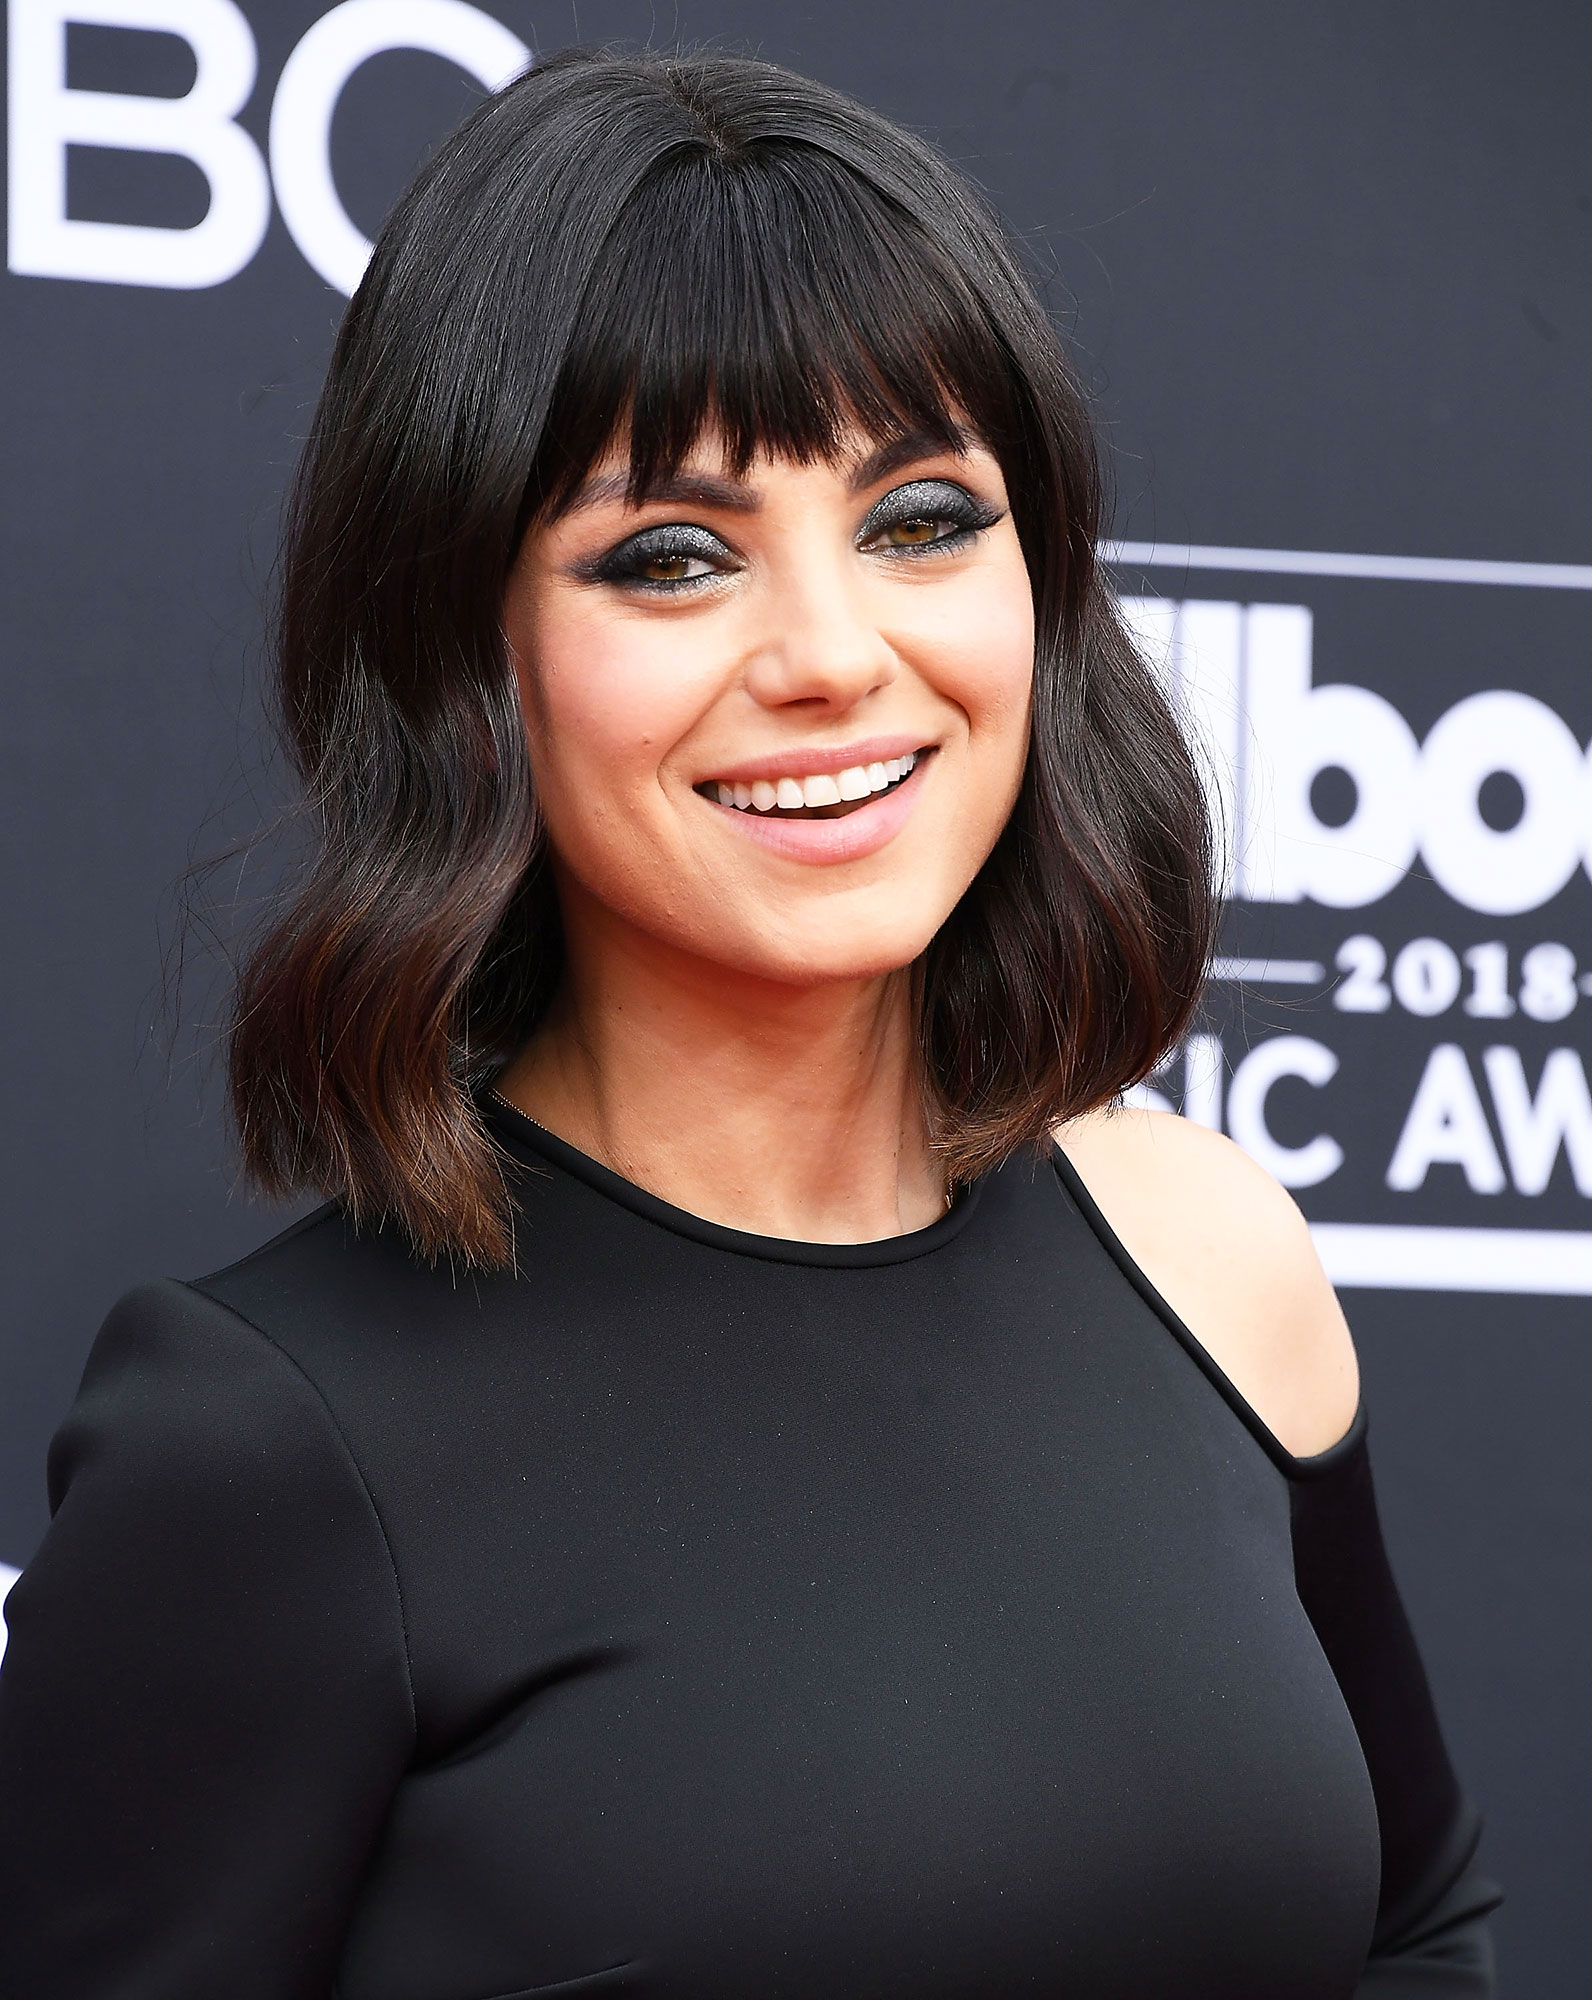 Mila Kunis Celebrity Bangs: Fierce Fringe Inspo For Your Next Haircut - Mane man Chad Wood updated the raven-haired beauty's already trendy bob with choppy bangs for the 2018 Billboard Music Awards.